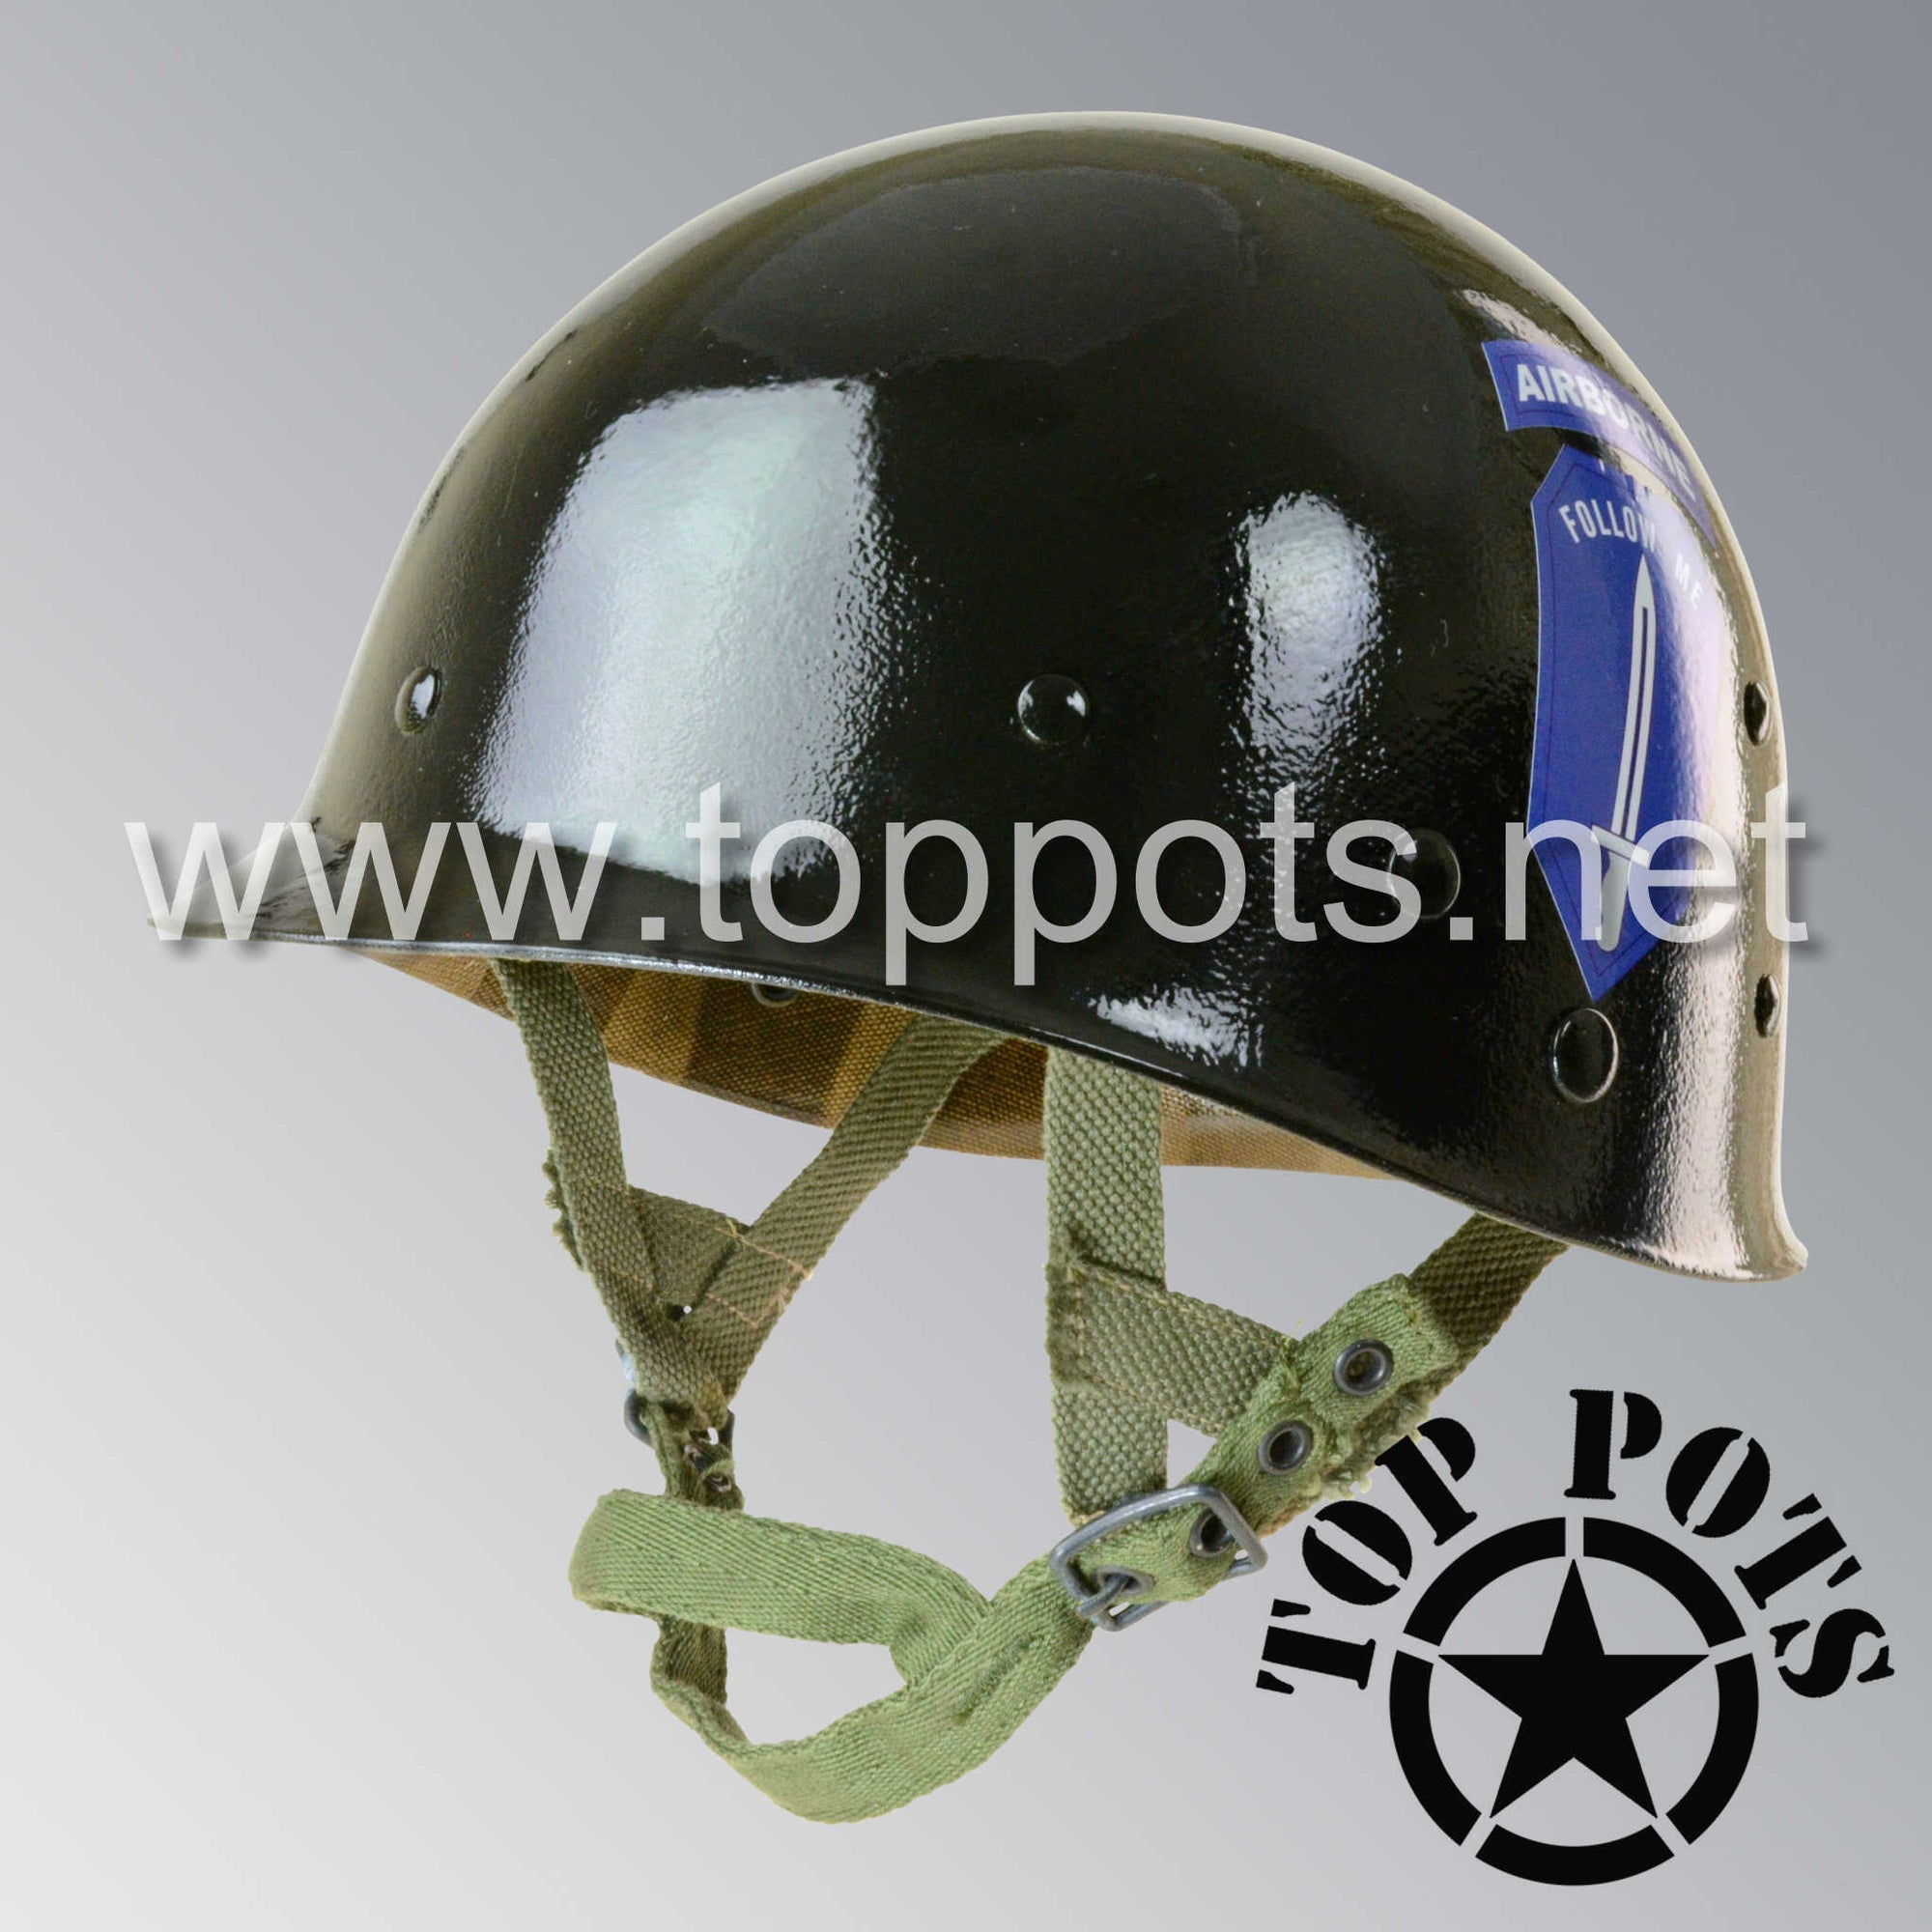 Image 1 of Vietnam War US Army Restored Original P55 M1C Paratrooper Airborne Helmet Liner with Ranger Infantry School Emblem